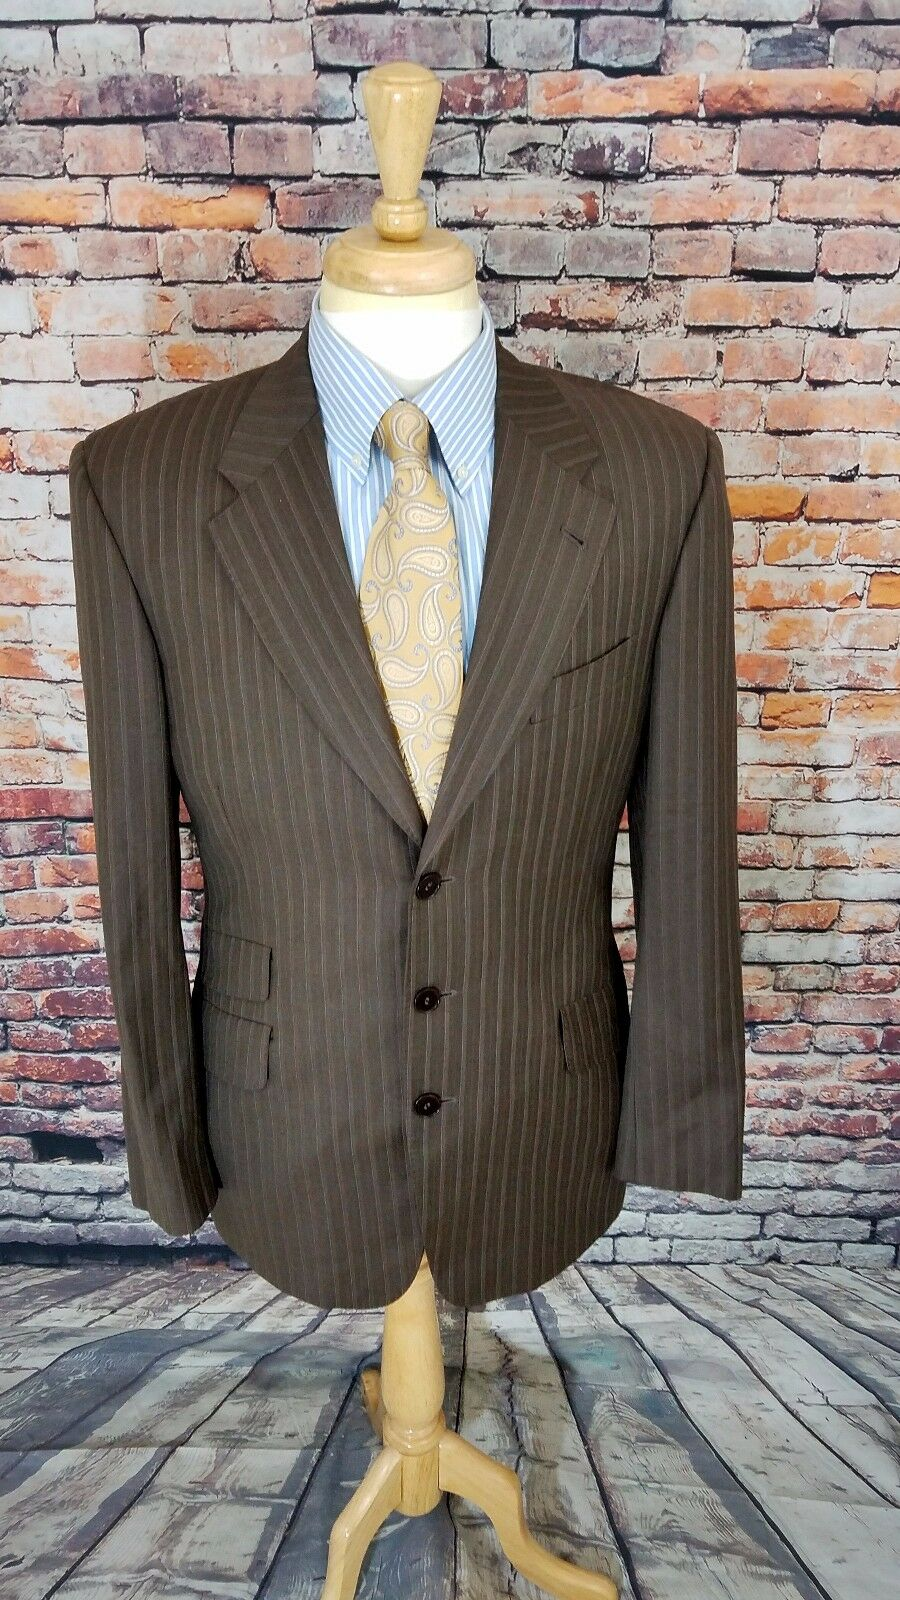 1070 Paul Smith London Abbey Road 40R 3 Button Braun Stripe Sport Coat Blazer